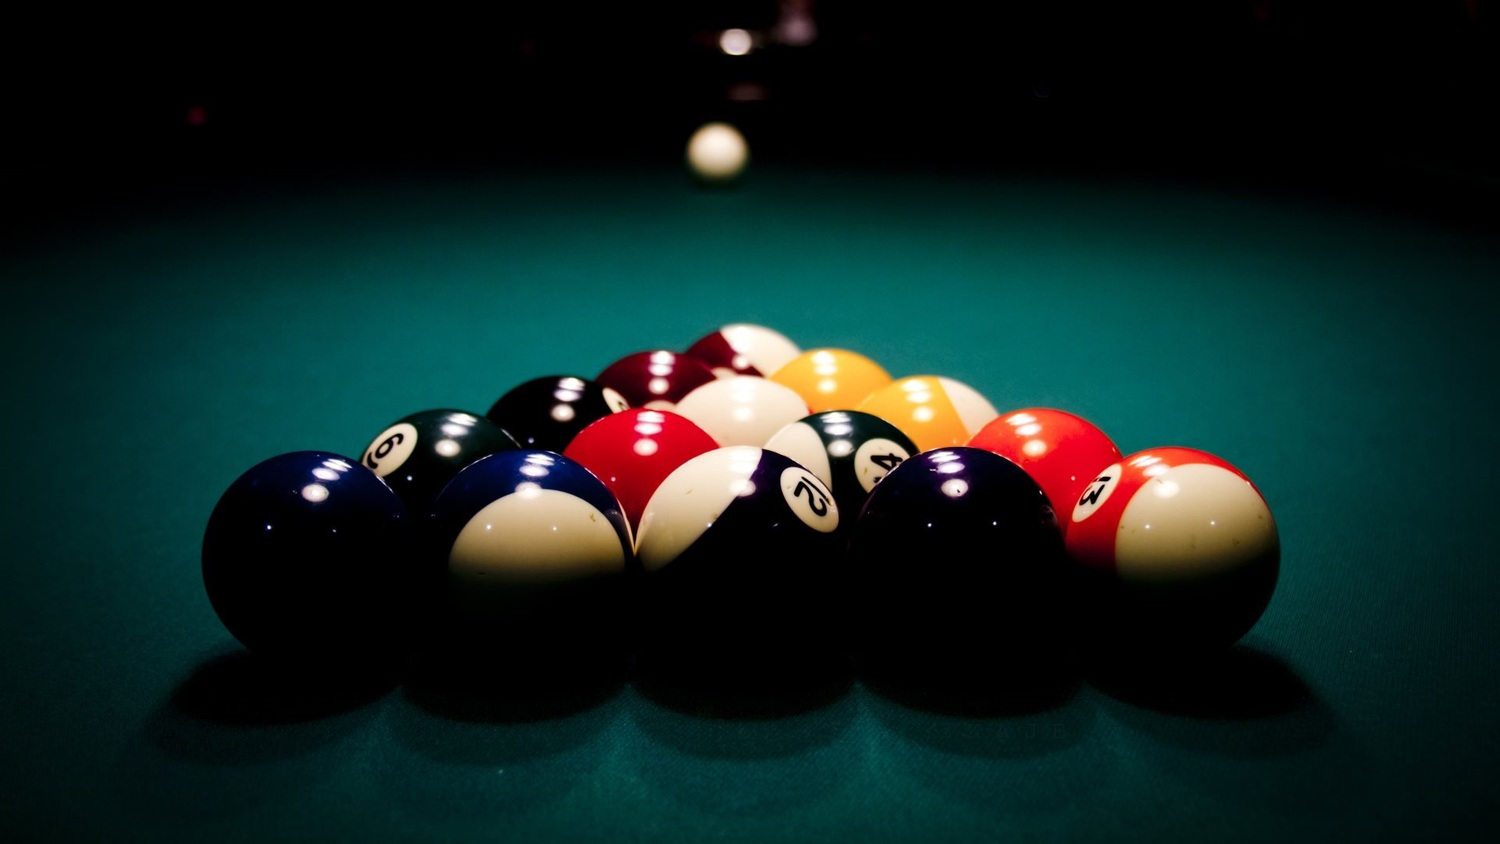 America Billiards Pool Tables Game Tables Services Accessories - Pool table movers miami